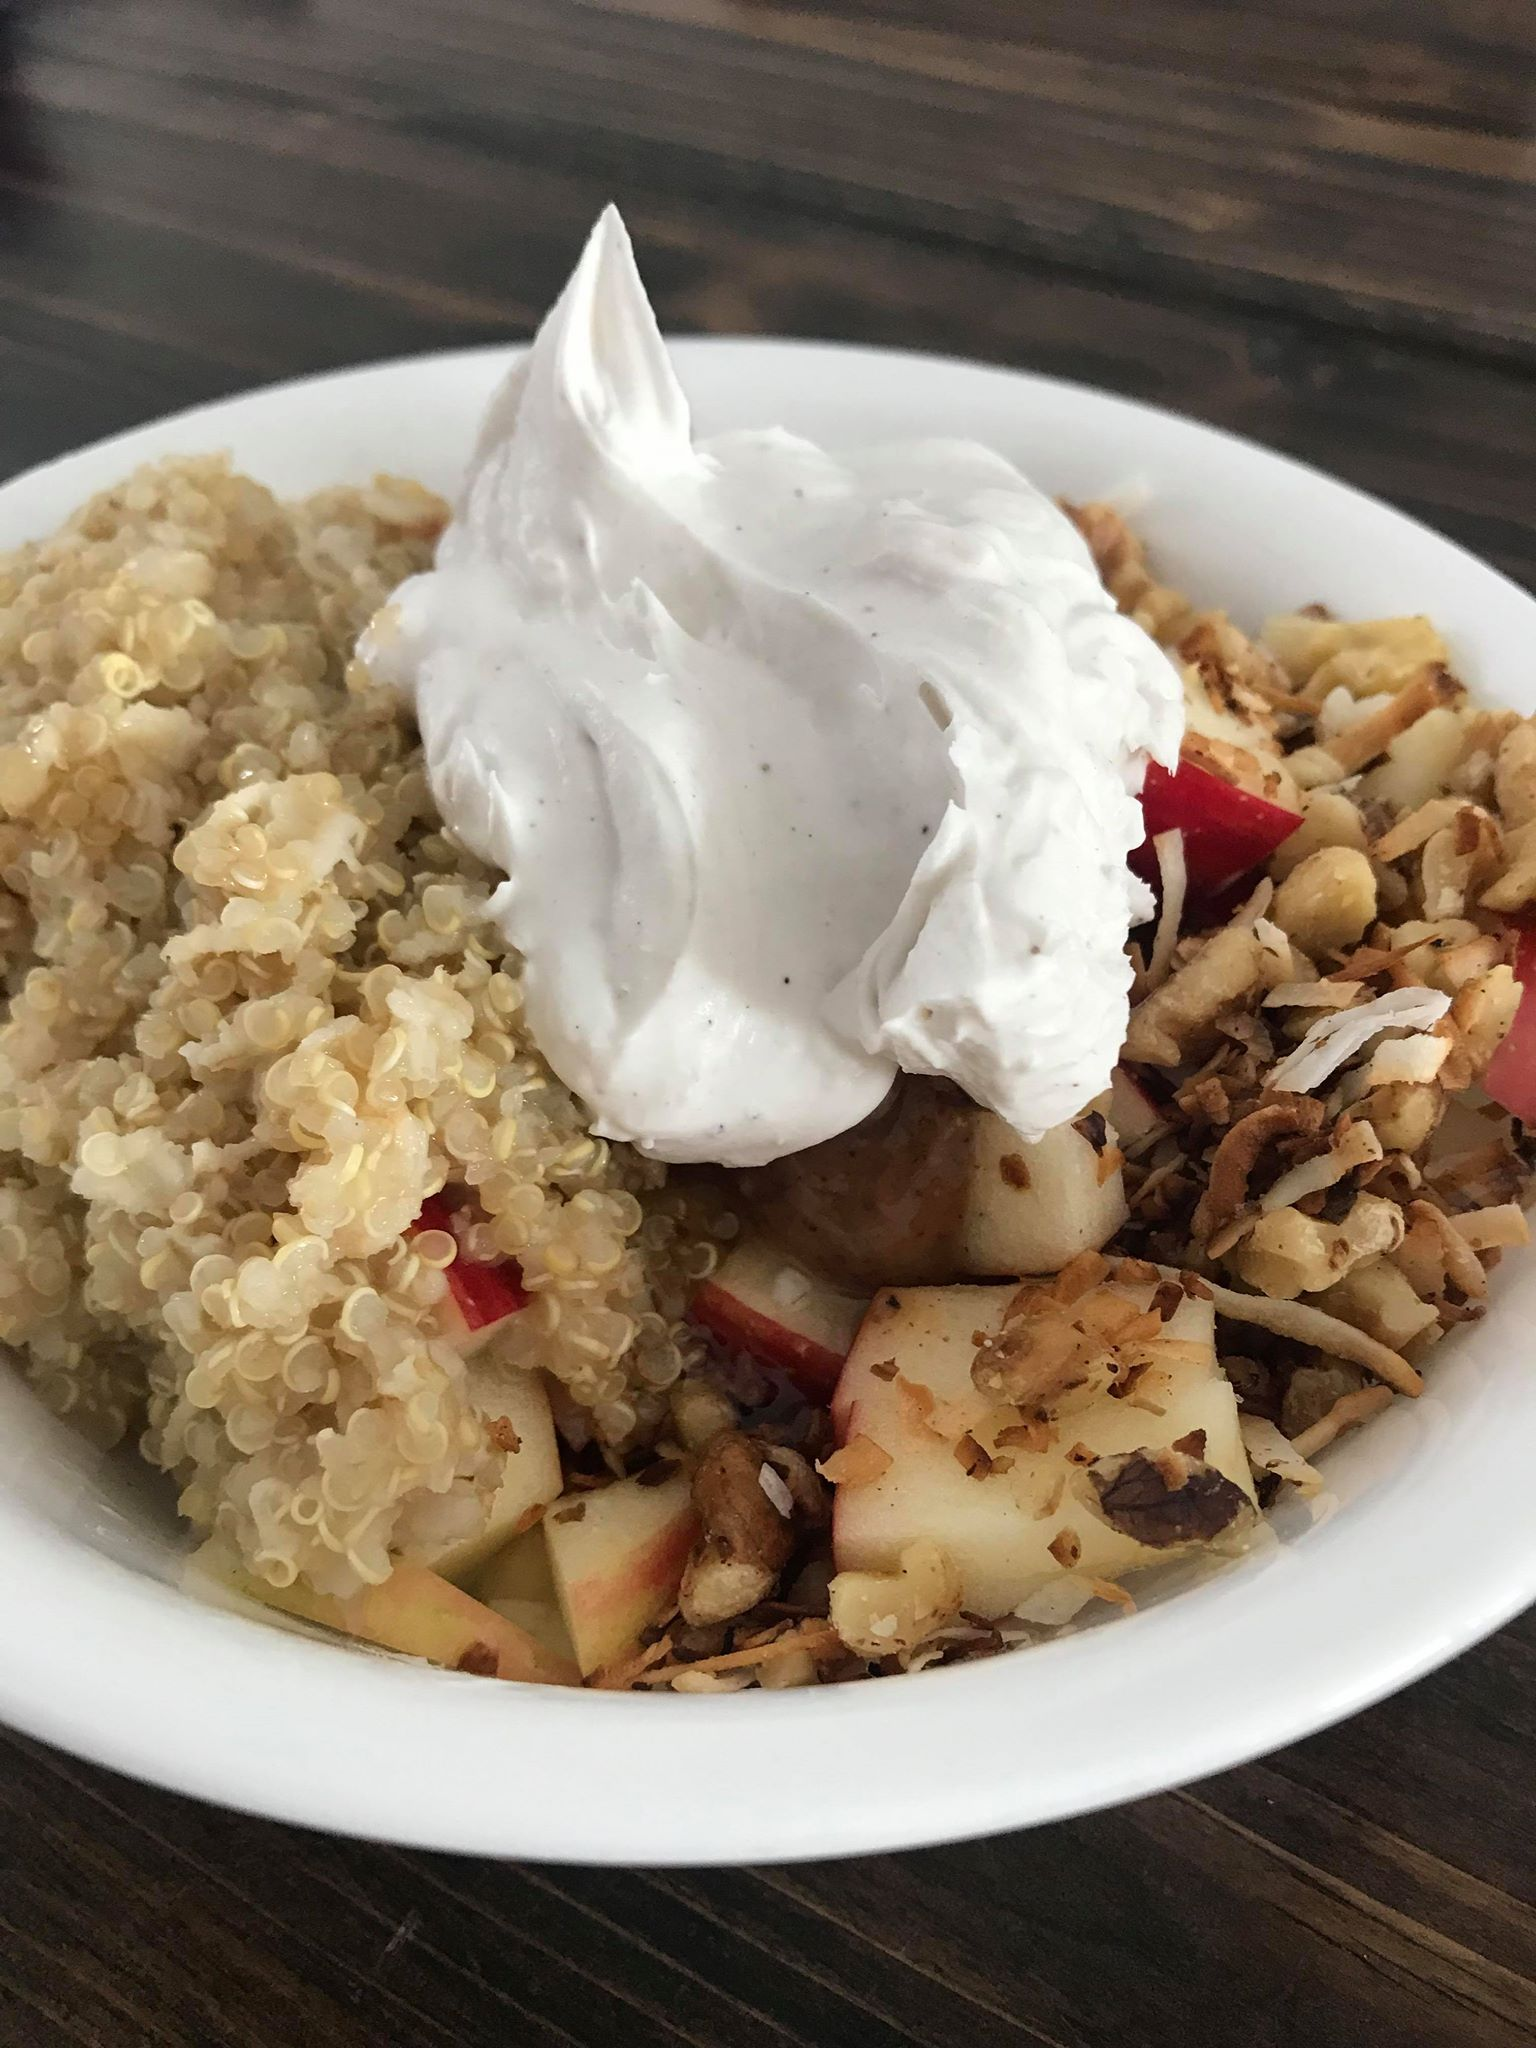 Trying to make healthy choices but need something? This Healthy Crisp Apple Power Bowl (with only 5 ingredients) is a must try!